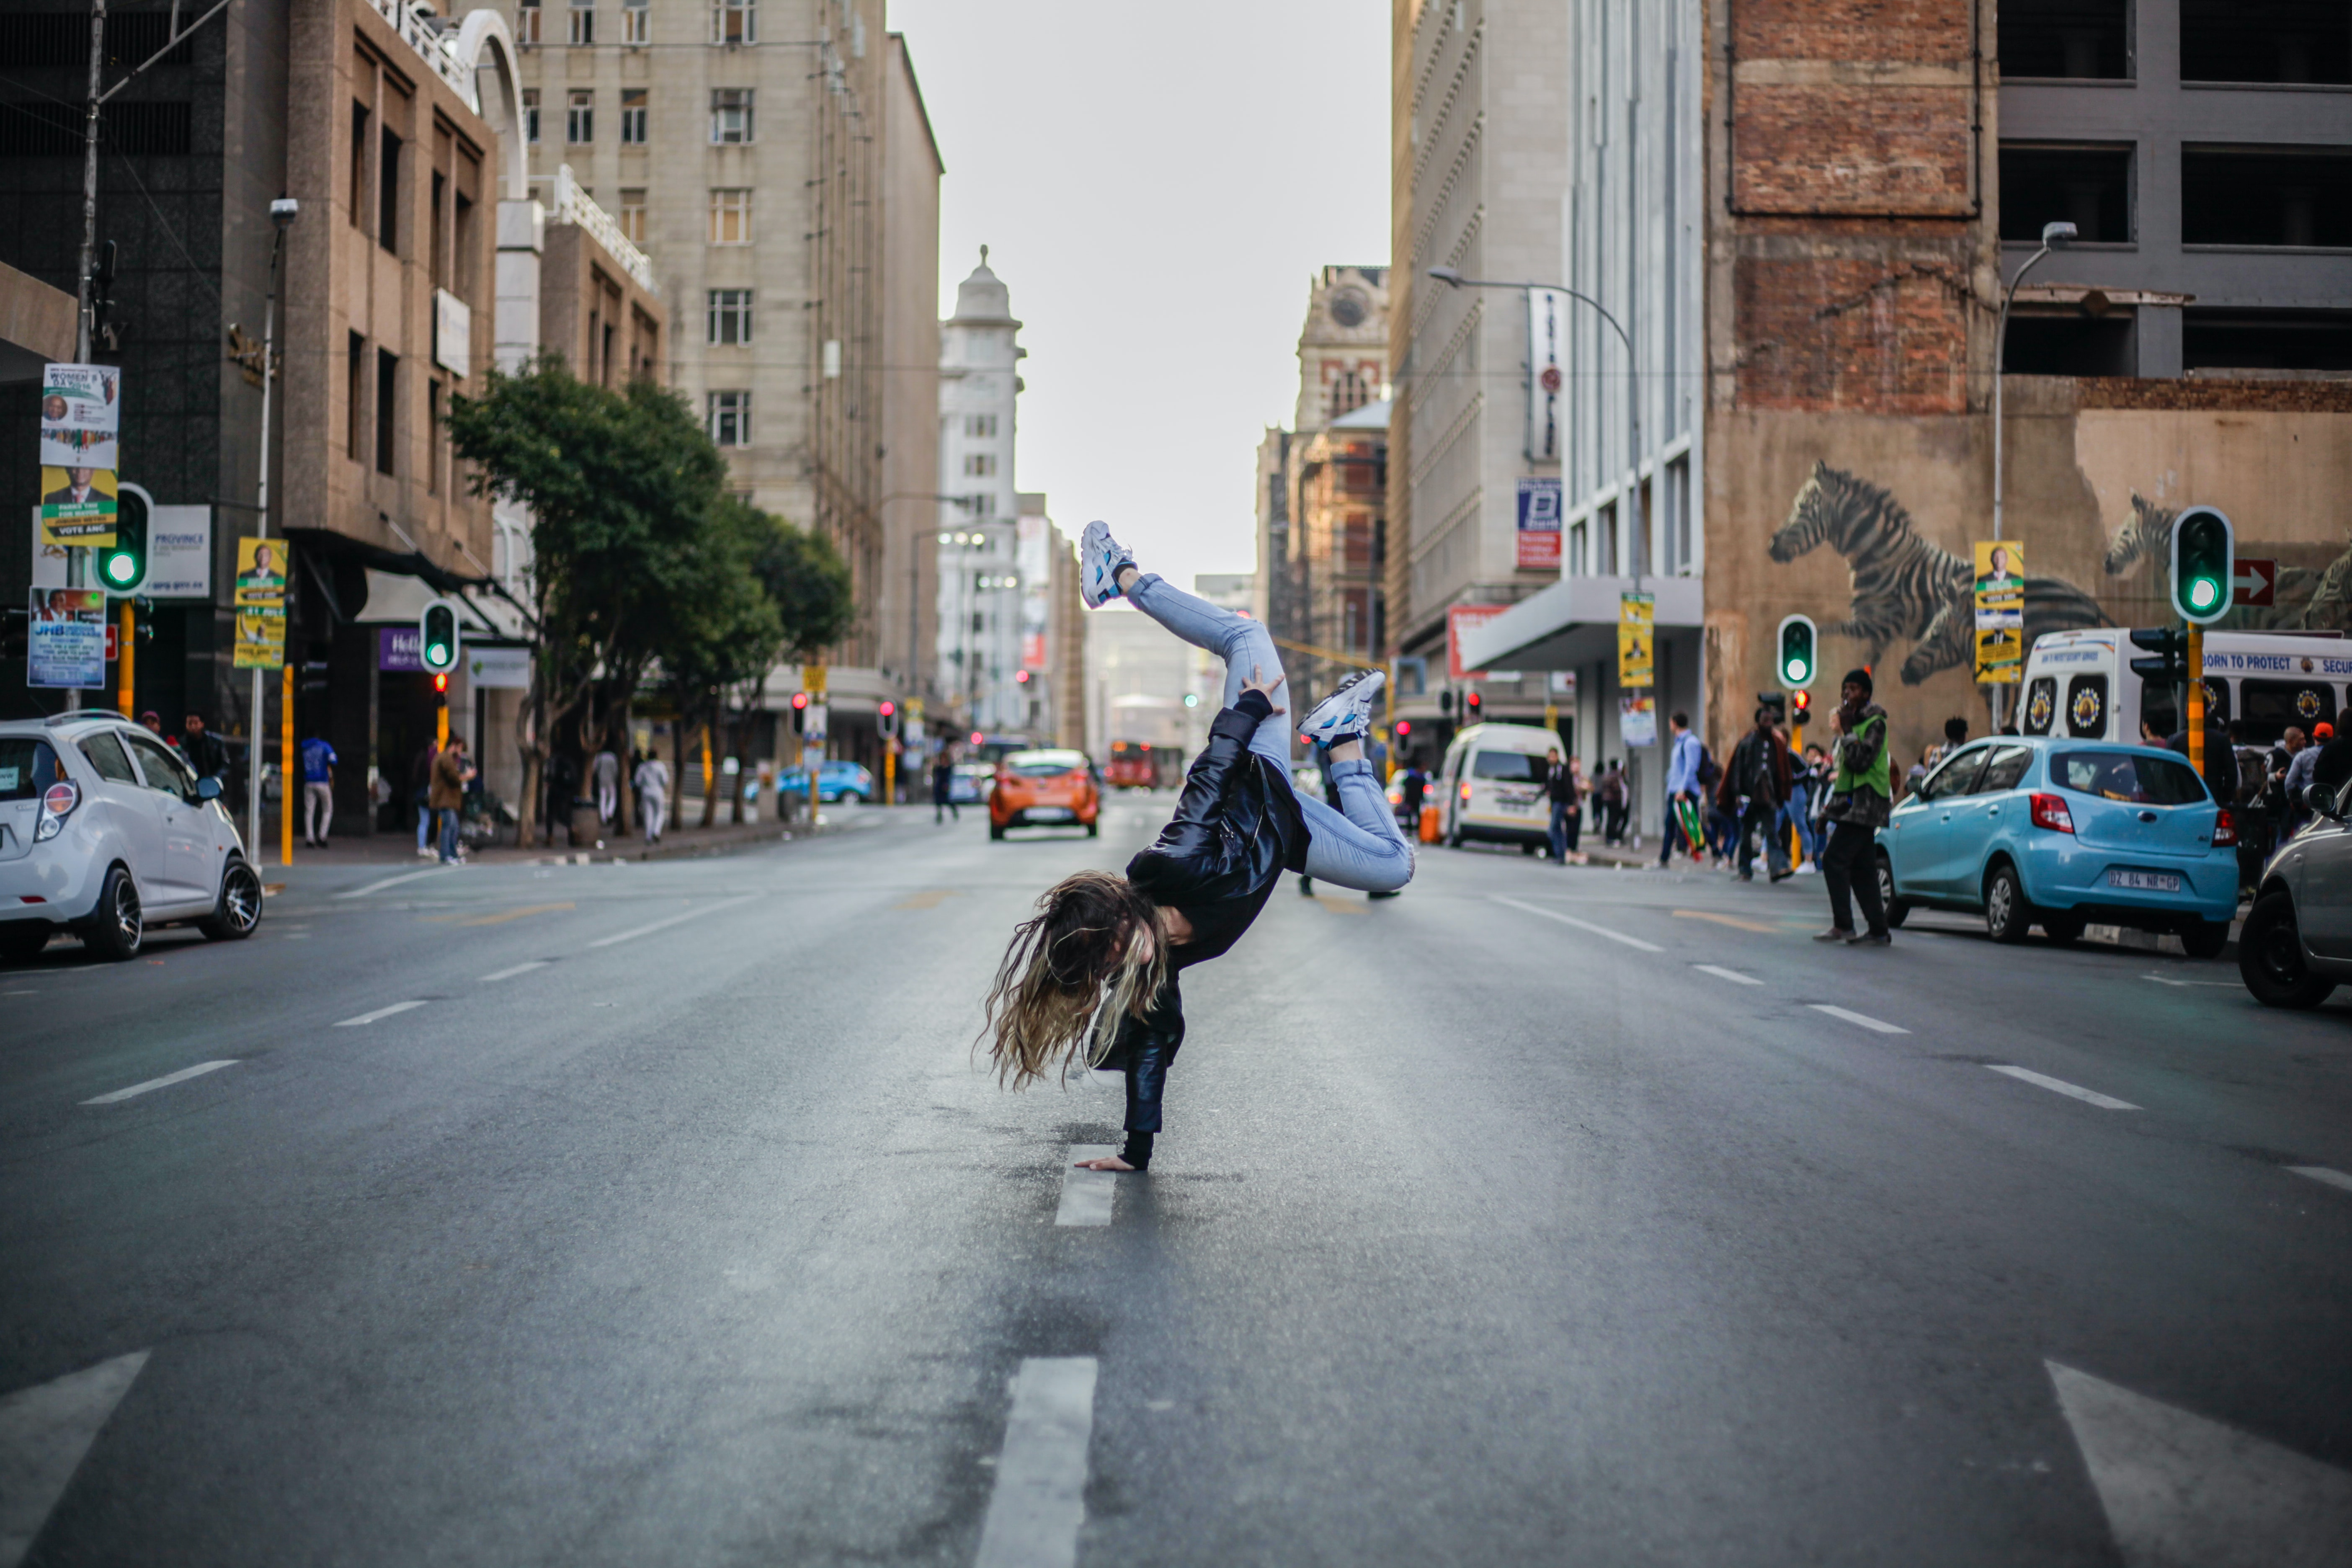 person hand standing on concrete road